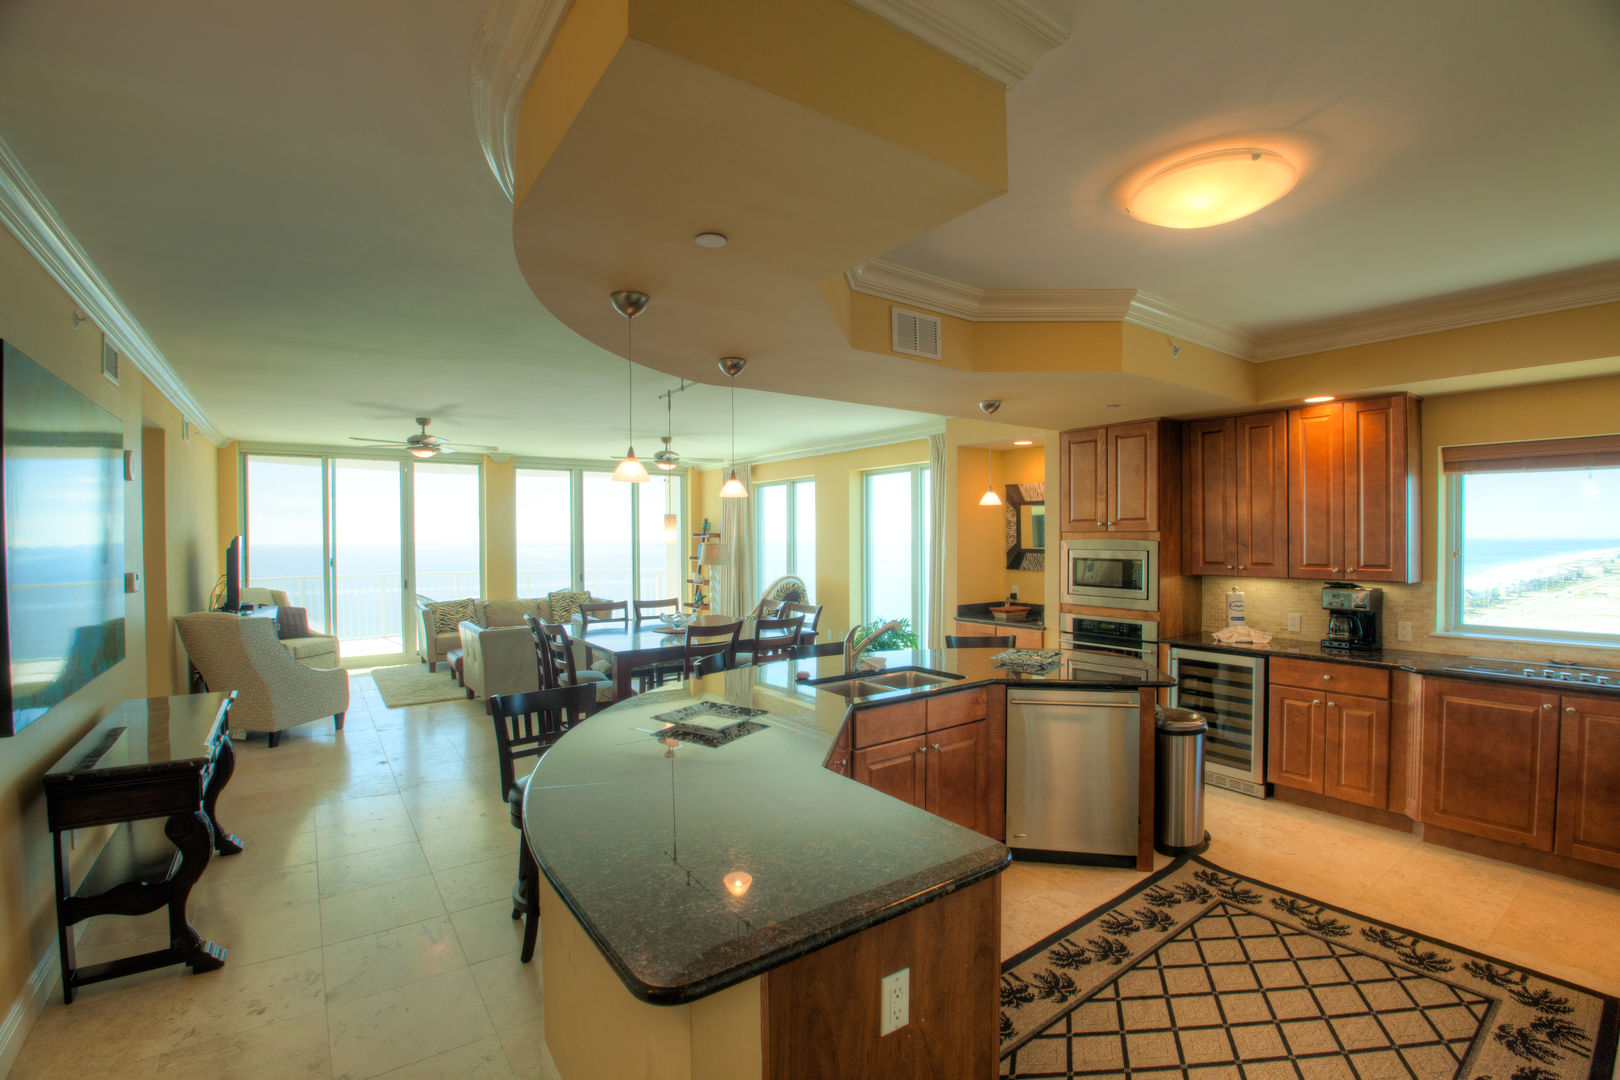 Kitchen with Island, Stools, Dishwasher, Wine Cooler, and Dining Set.